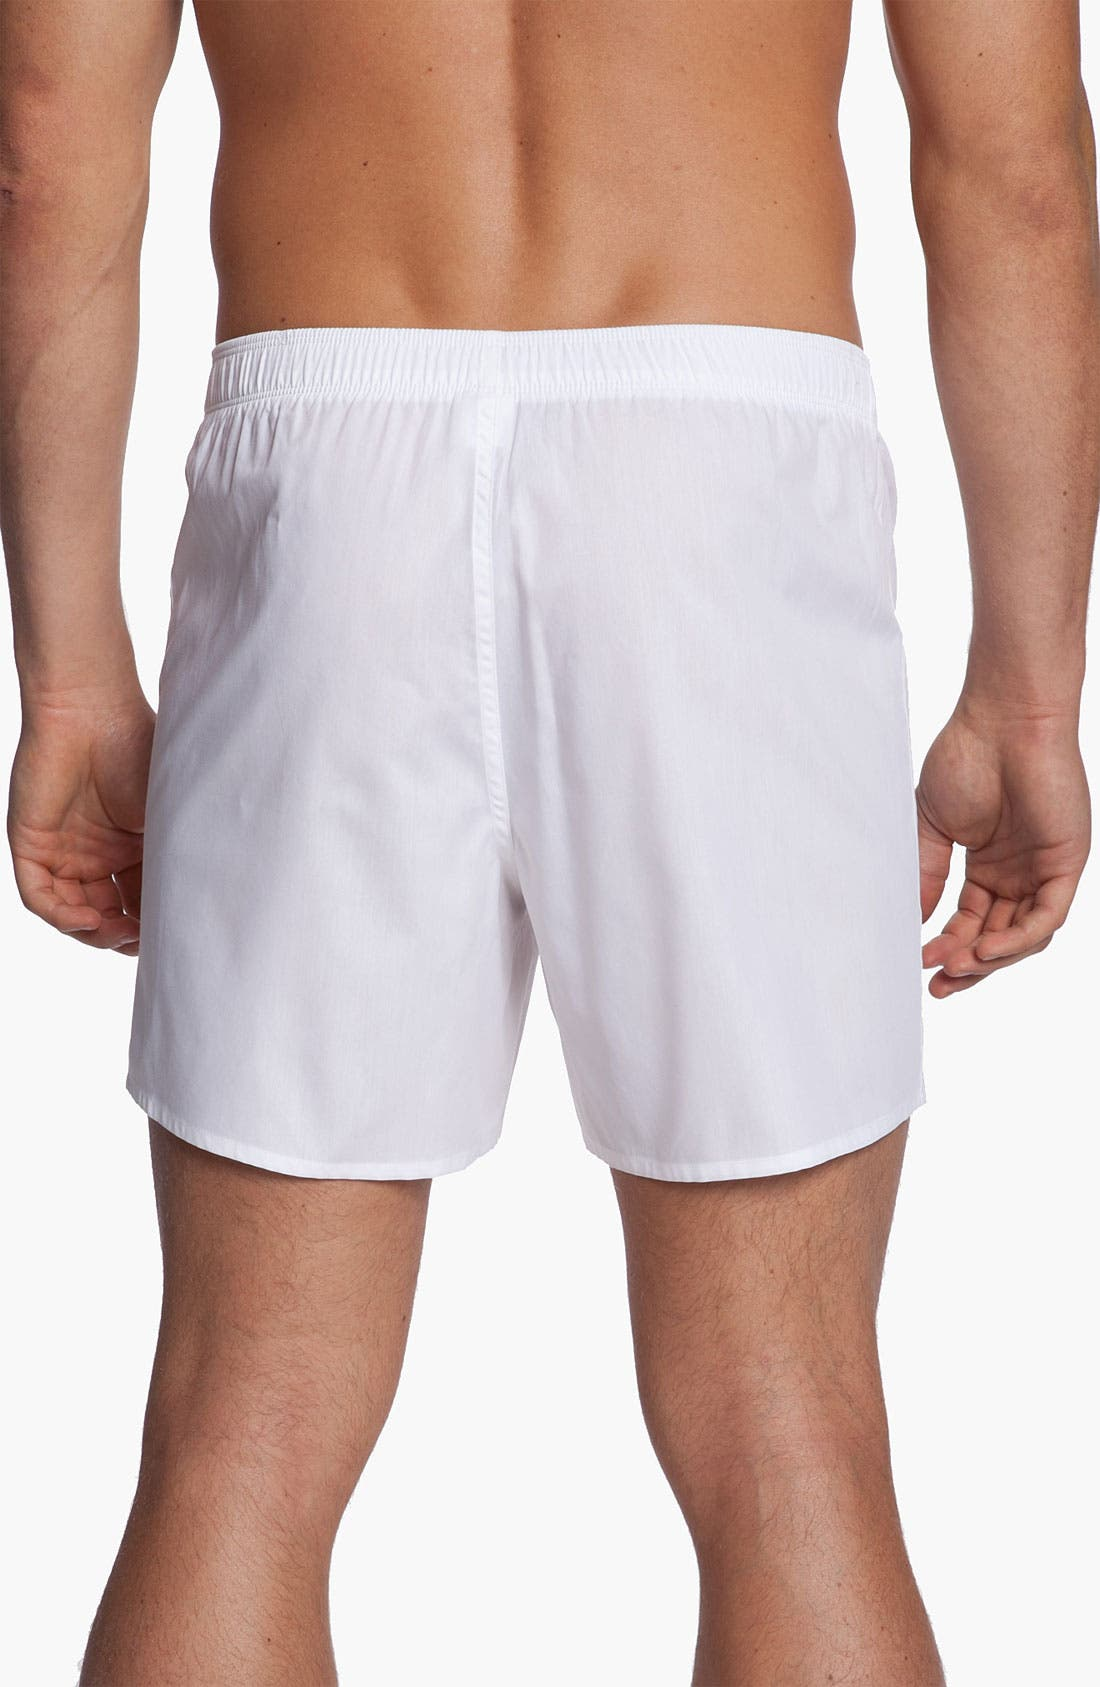 Alternate Image 2  - Nordstrom Trim Fit Cotton Boxers